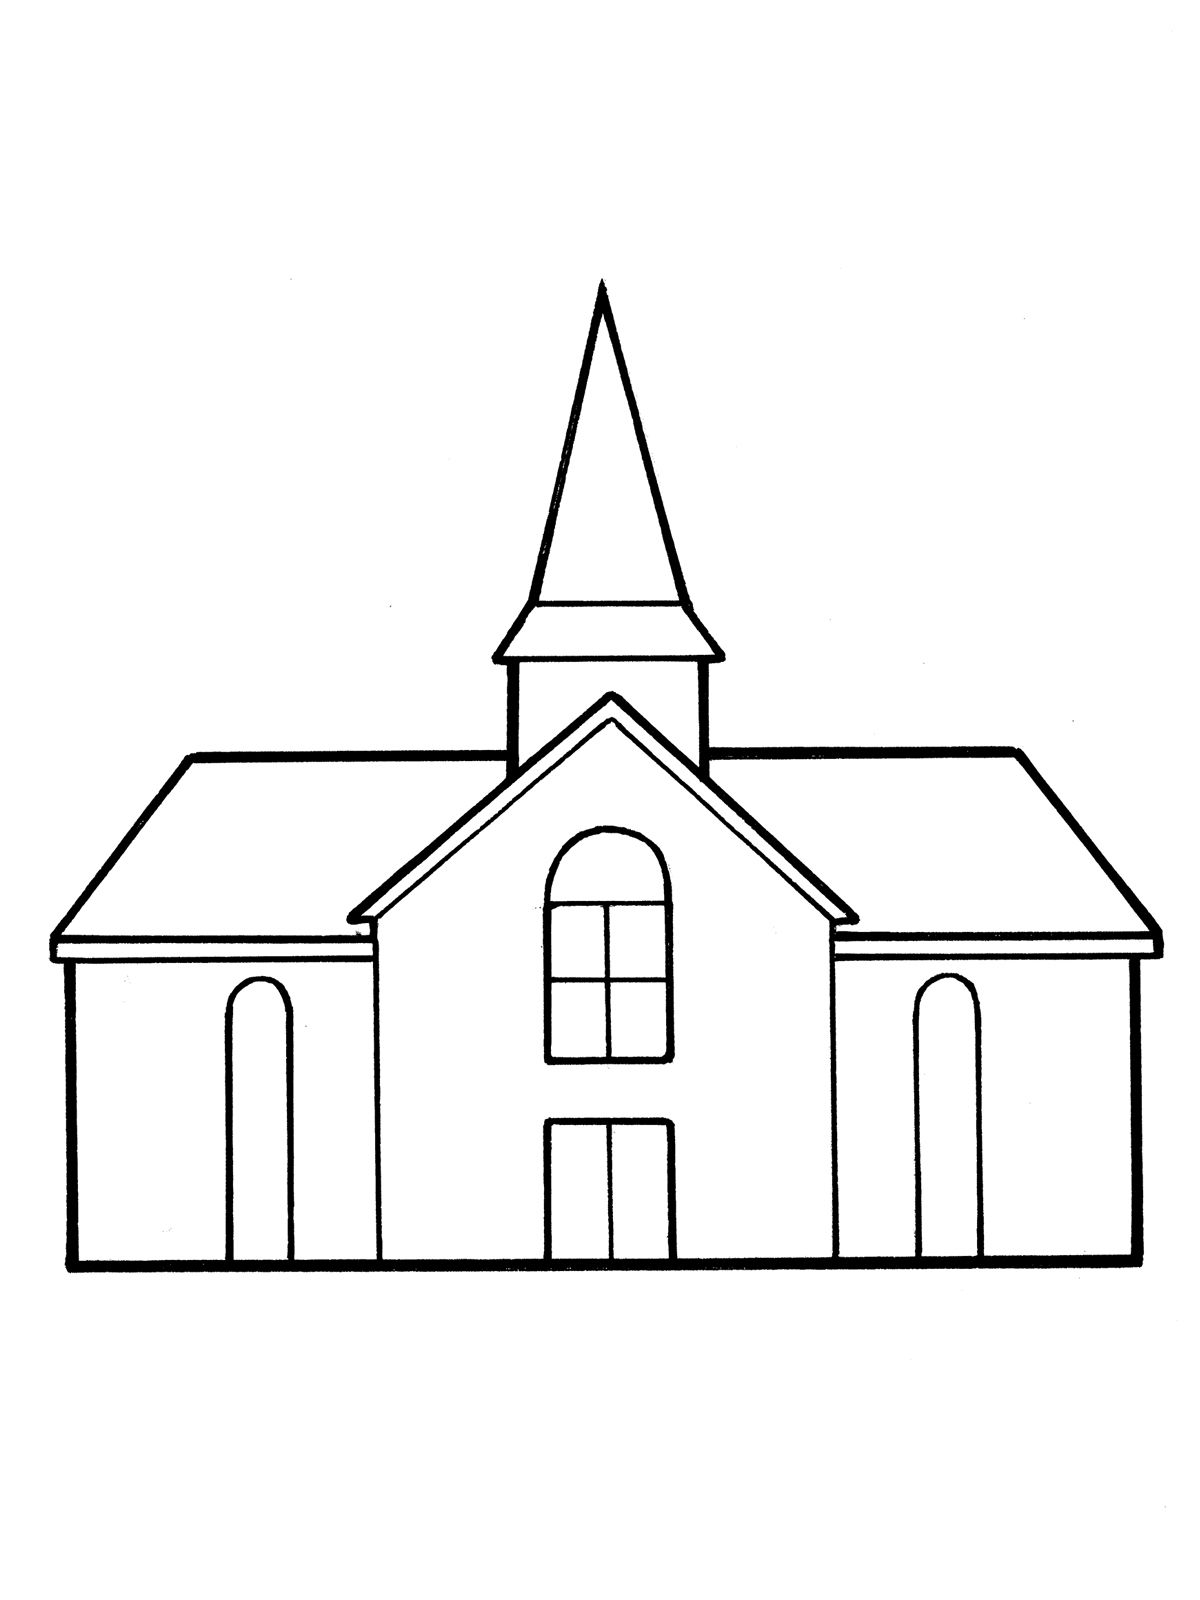 a line drawing of a meetinghouse from the nursery manual behold